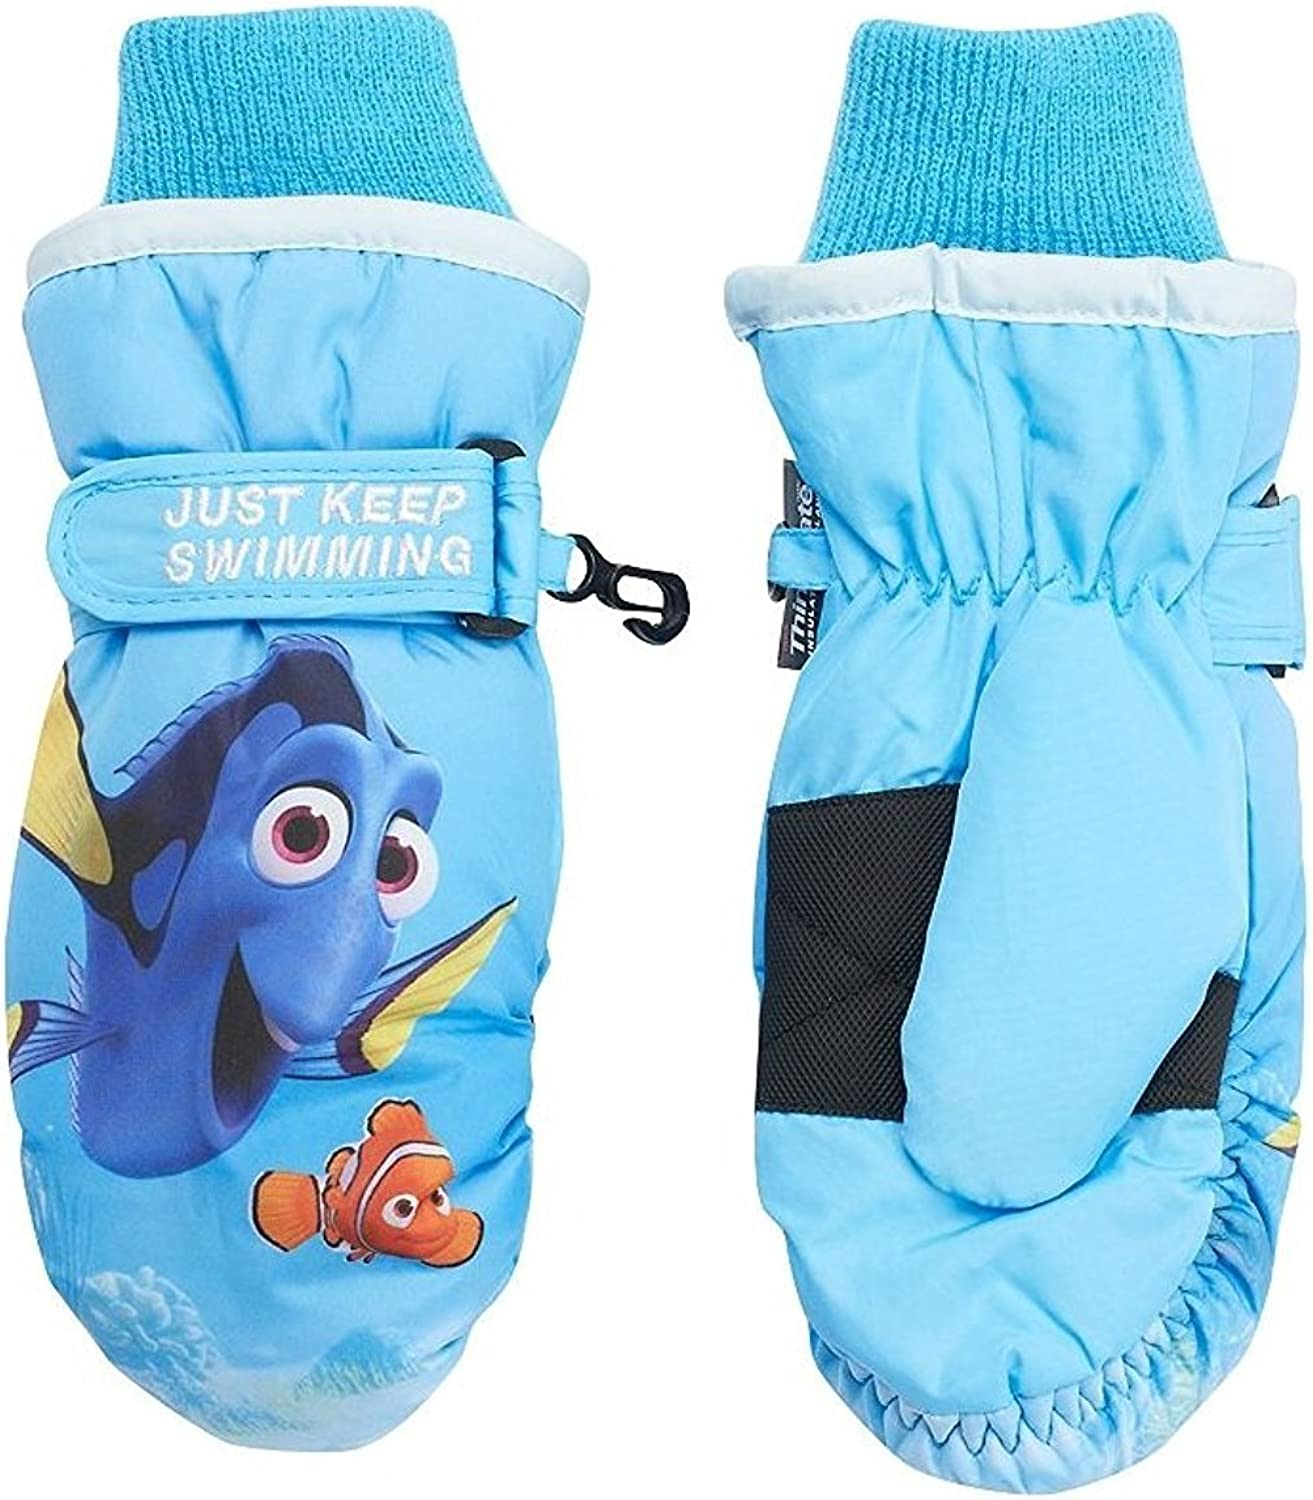 Girls Child Finding Dory Thinsulate Snow Ski Mittens ages 4 to 8